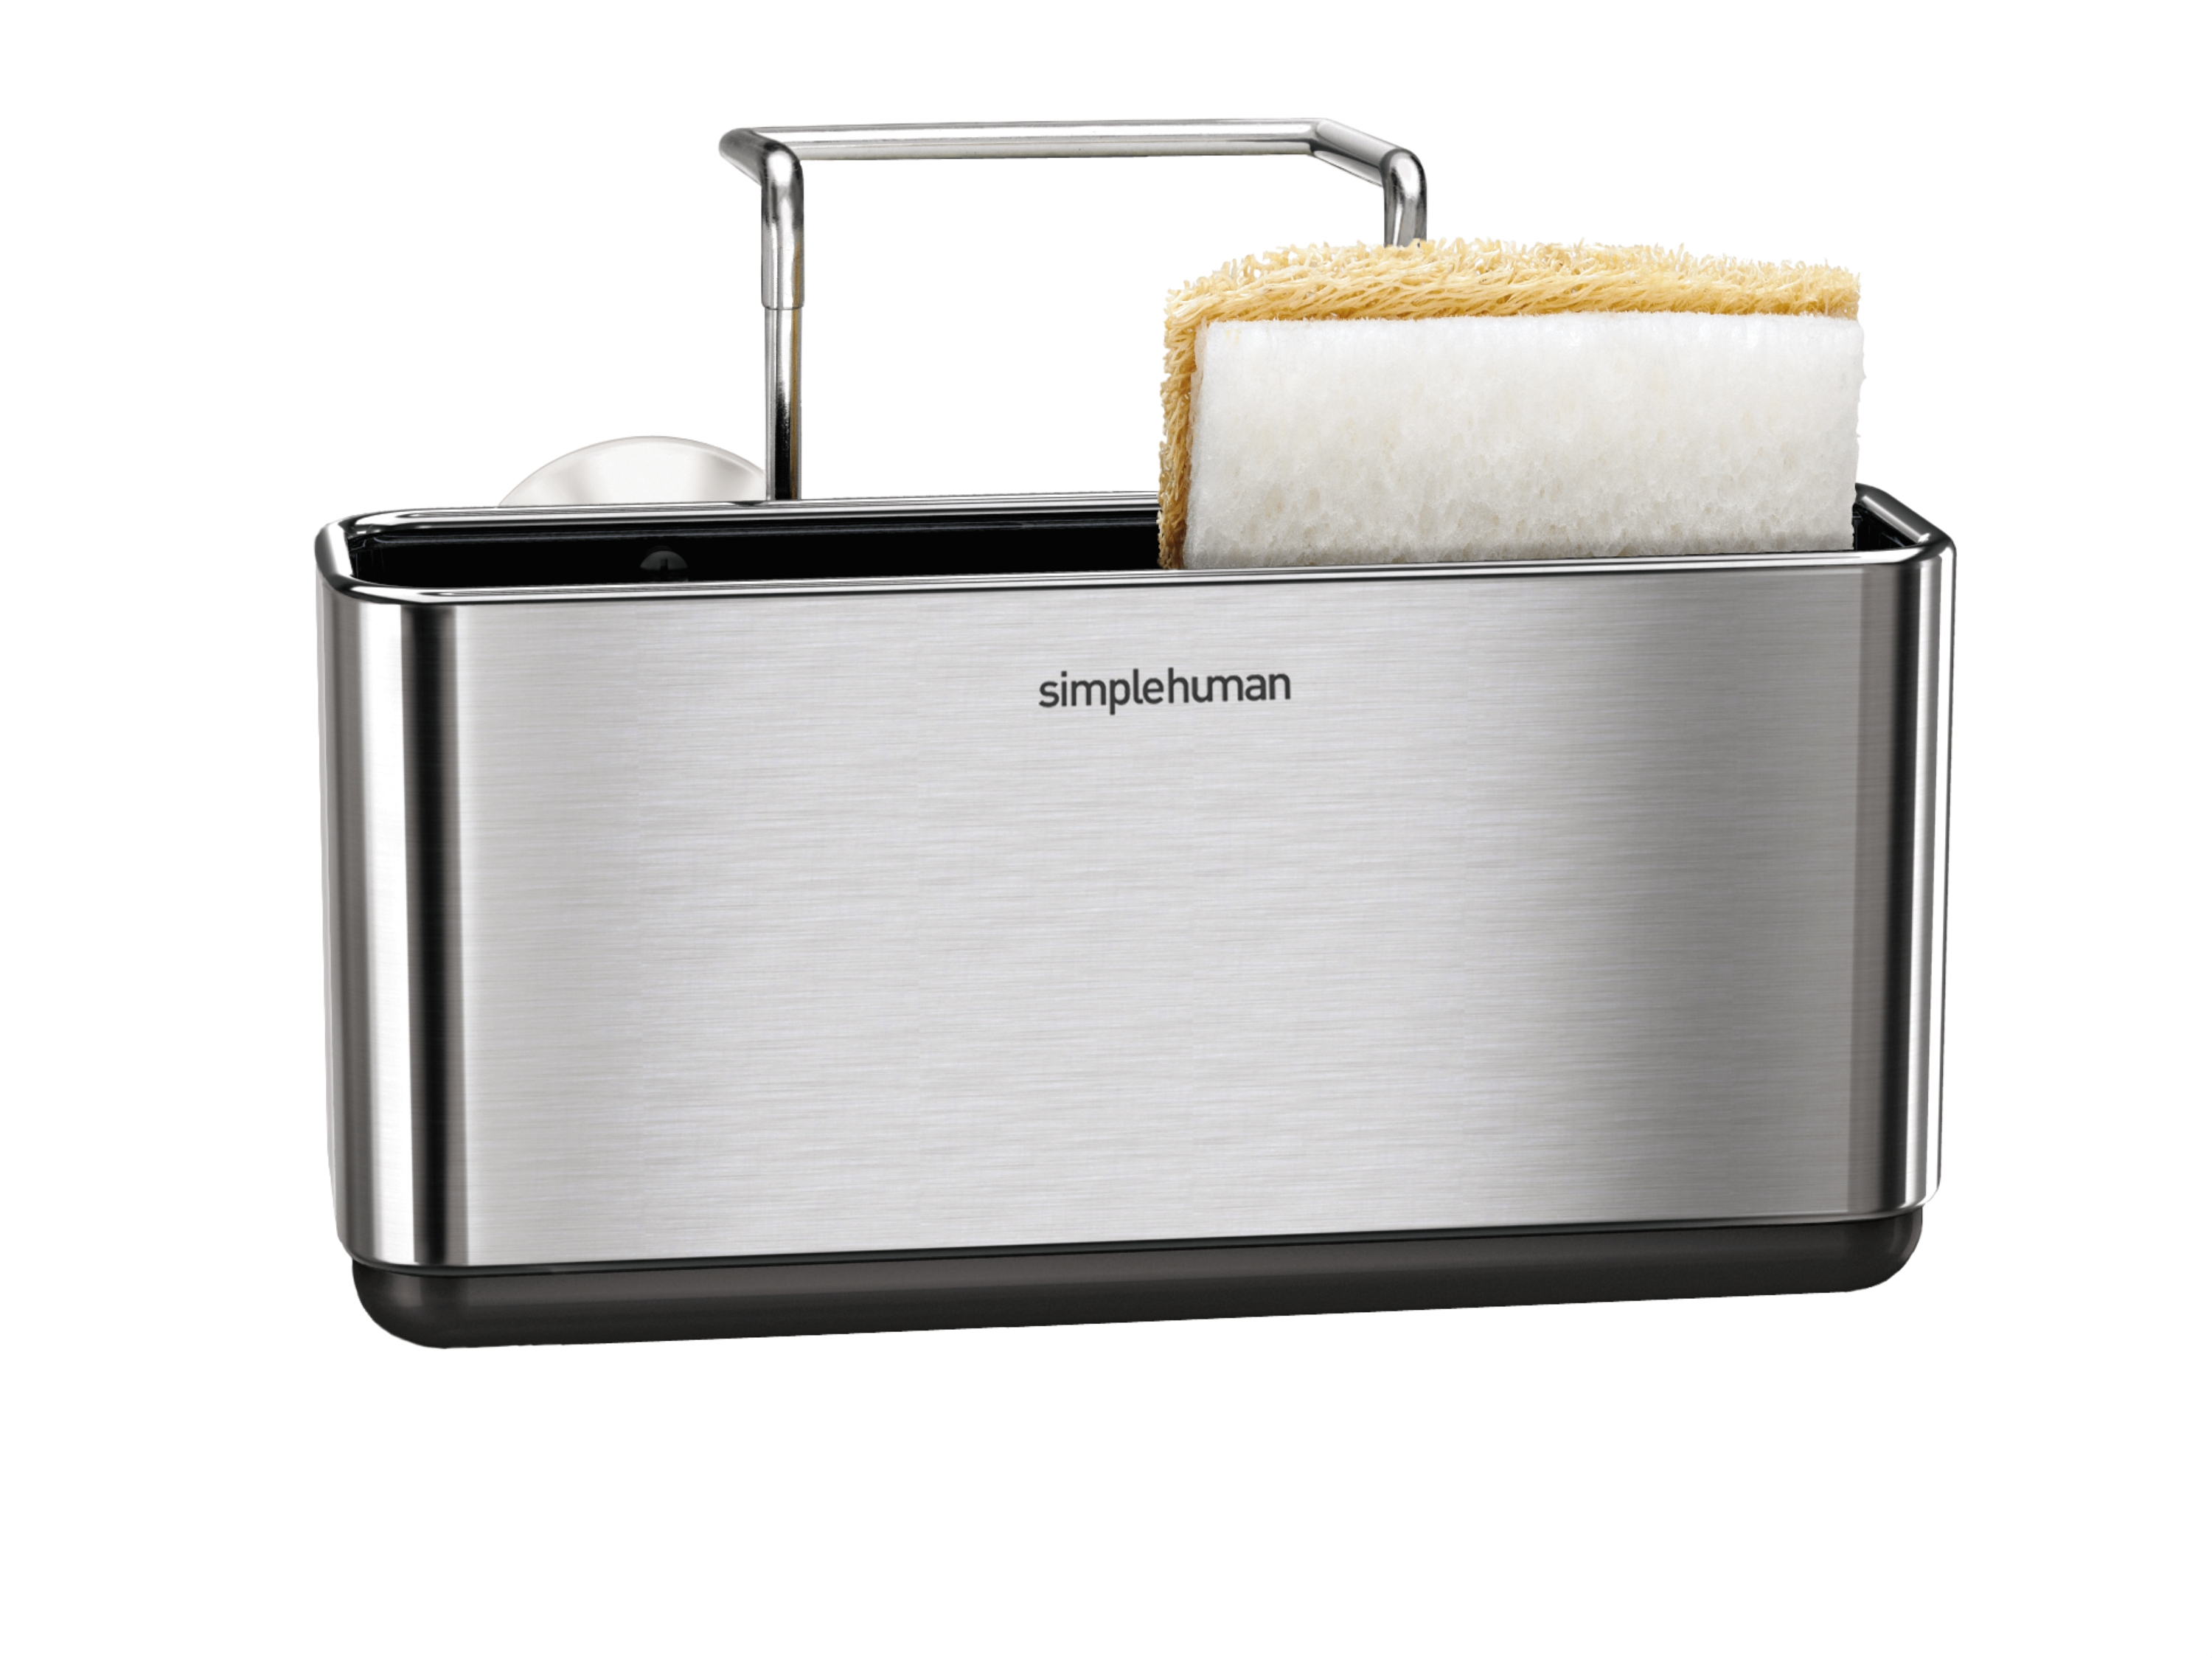 Merveilleux ... Simplehuman Slim Sink Caddy Brushed Stainless Steel